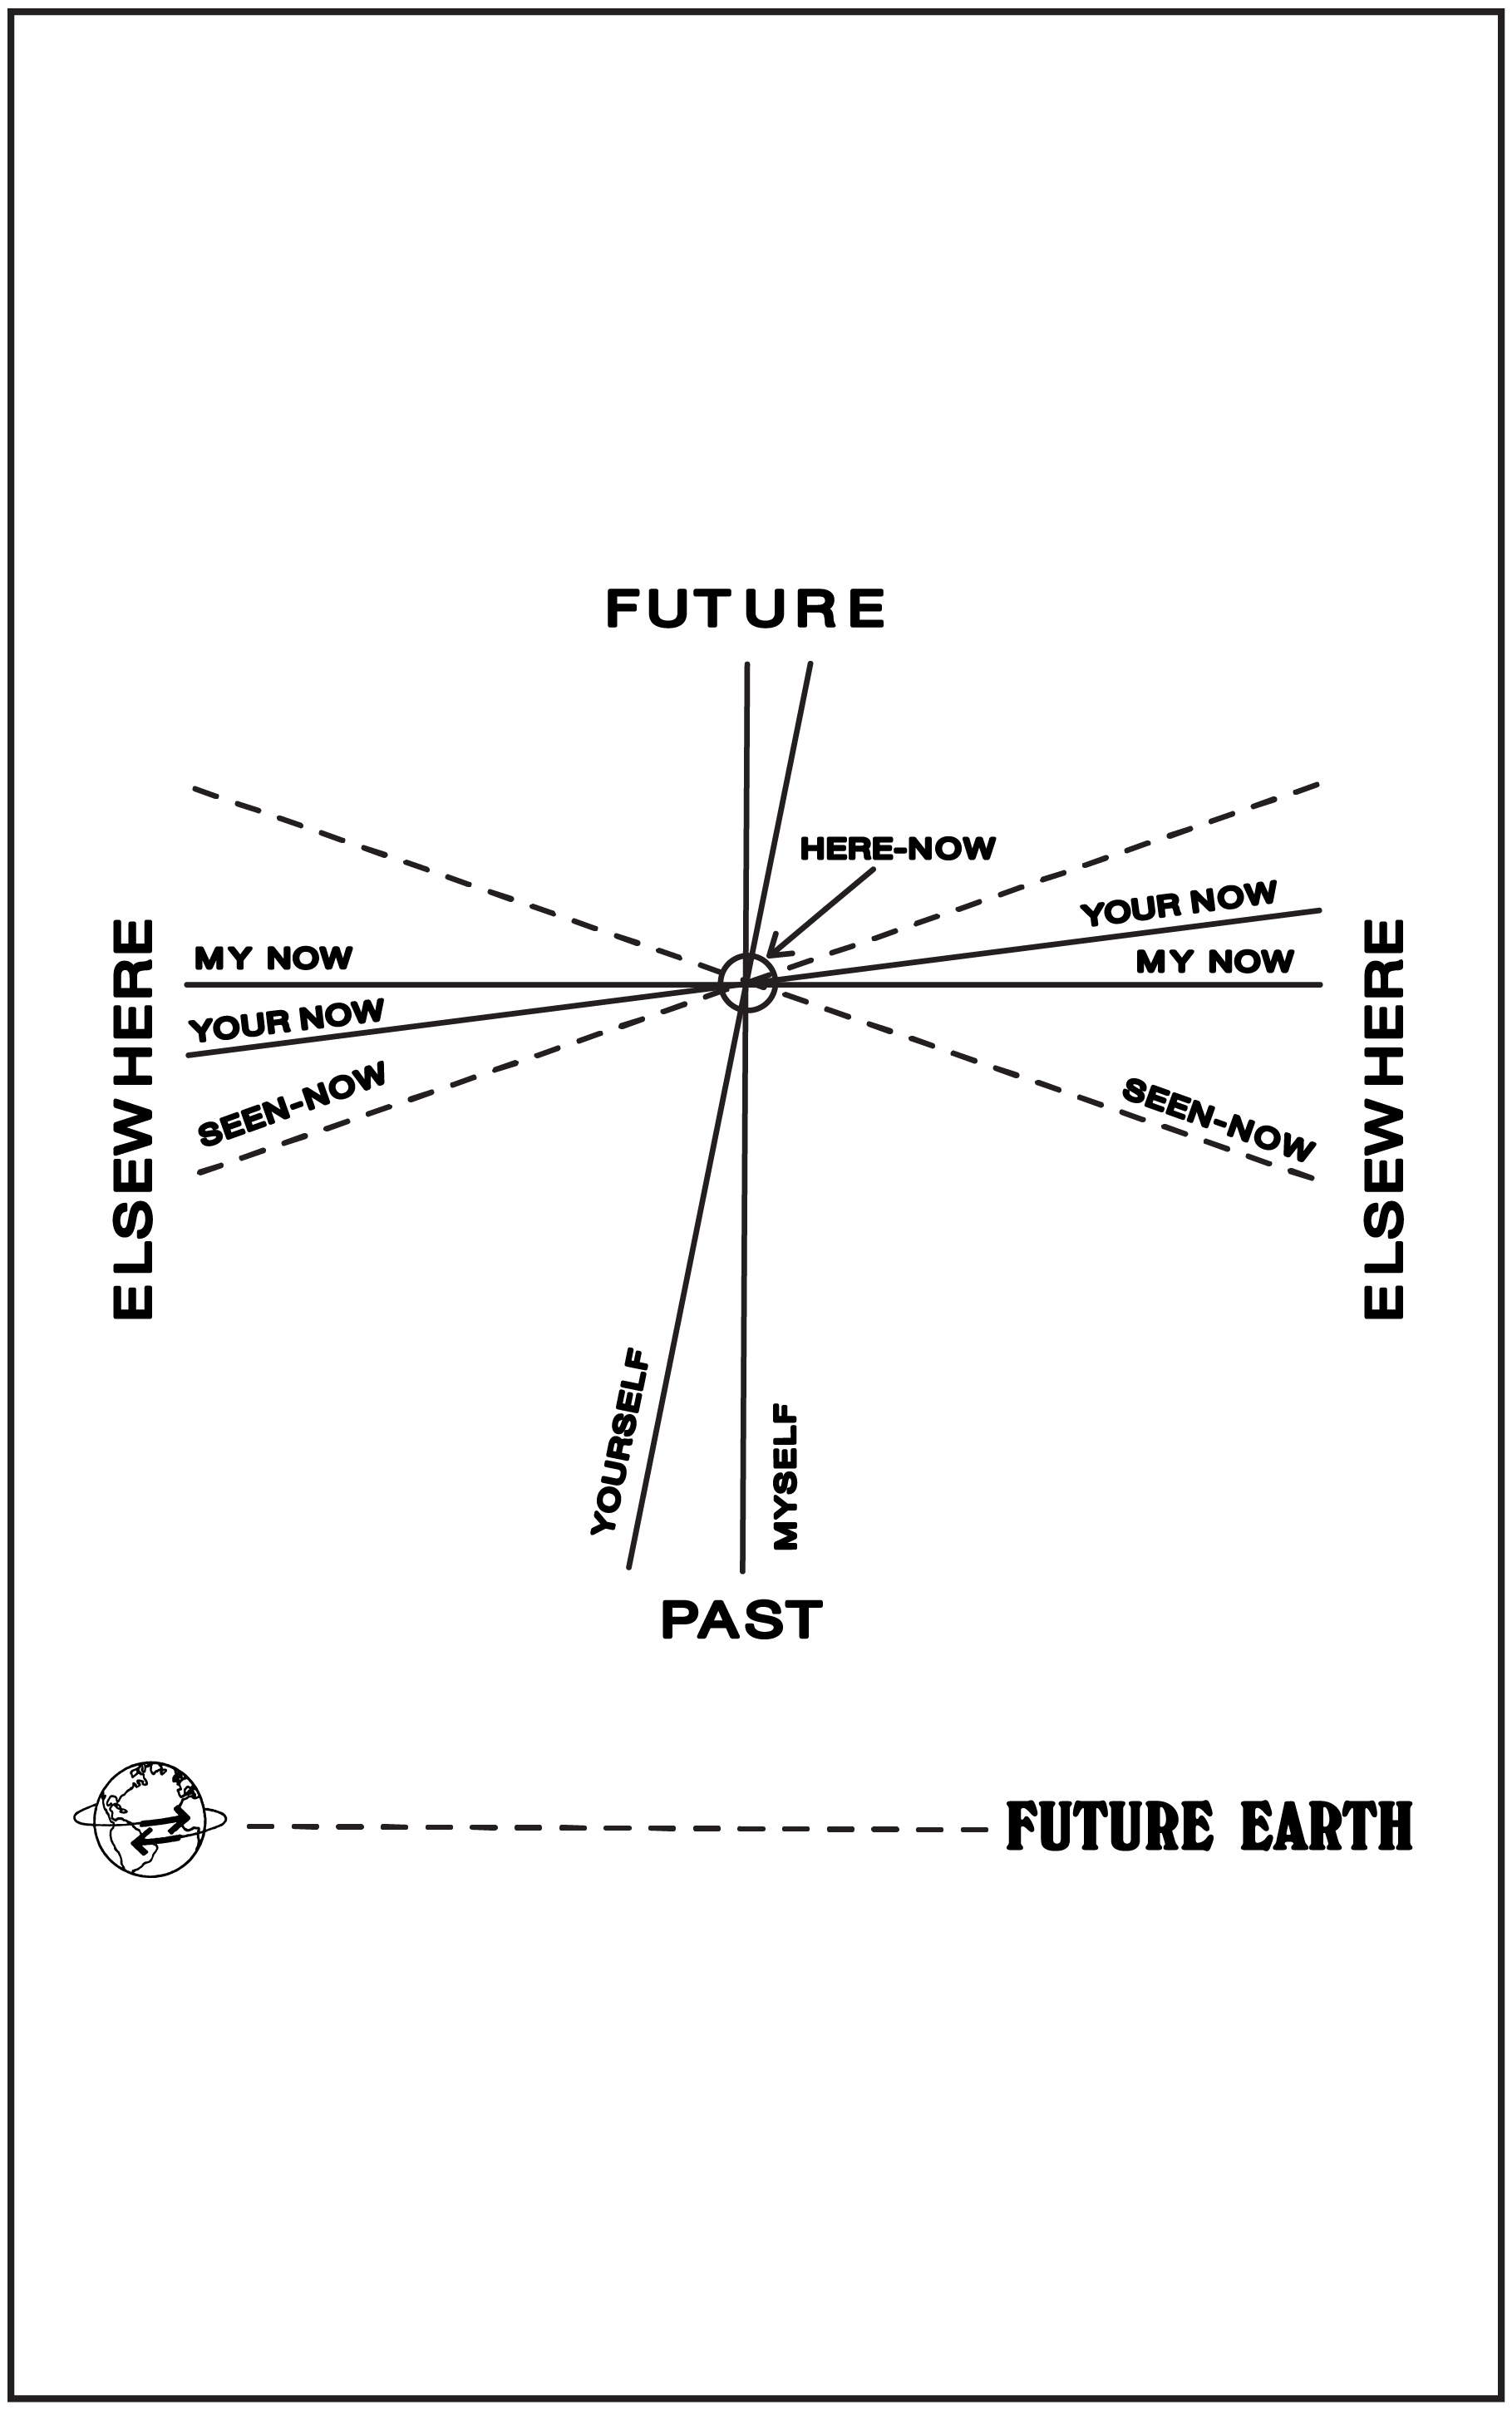 Future Earth Poster 3